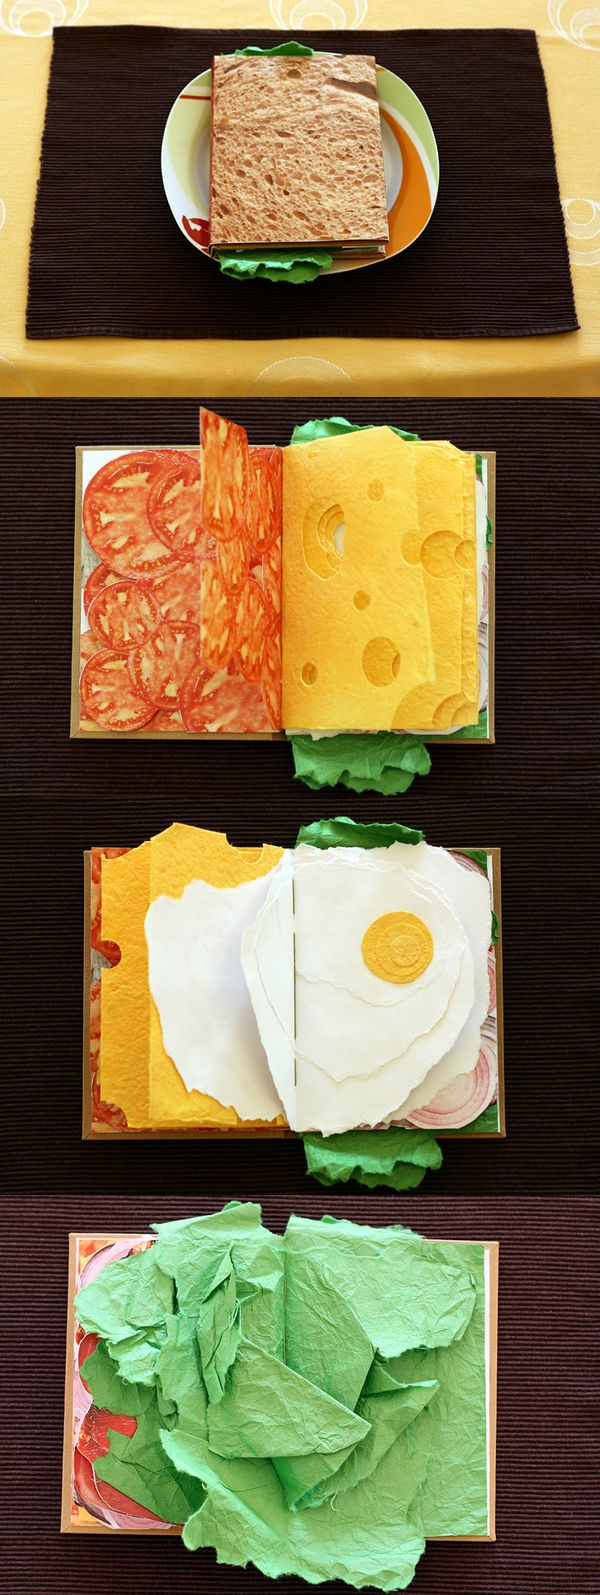 Sandwich Book by Pawel Piotrowski. 16 Creative Packaging Examples. #packaging | graphic design inspiration | digital media arts college | www.dmac.edu | 561.391.1148